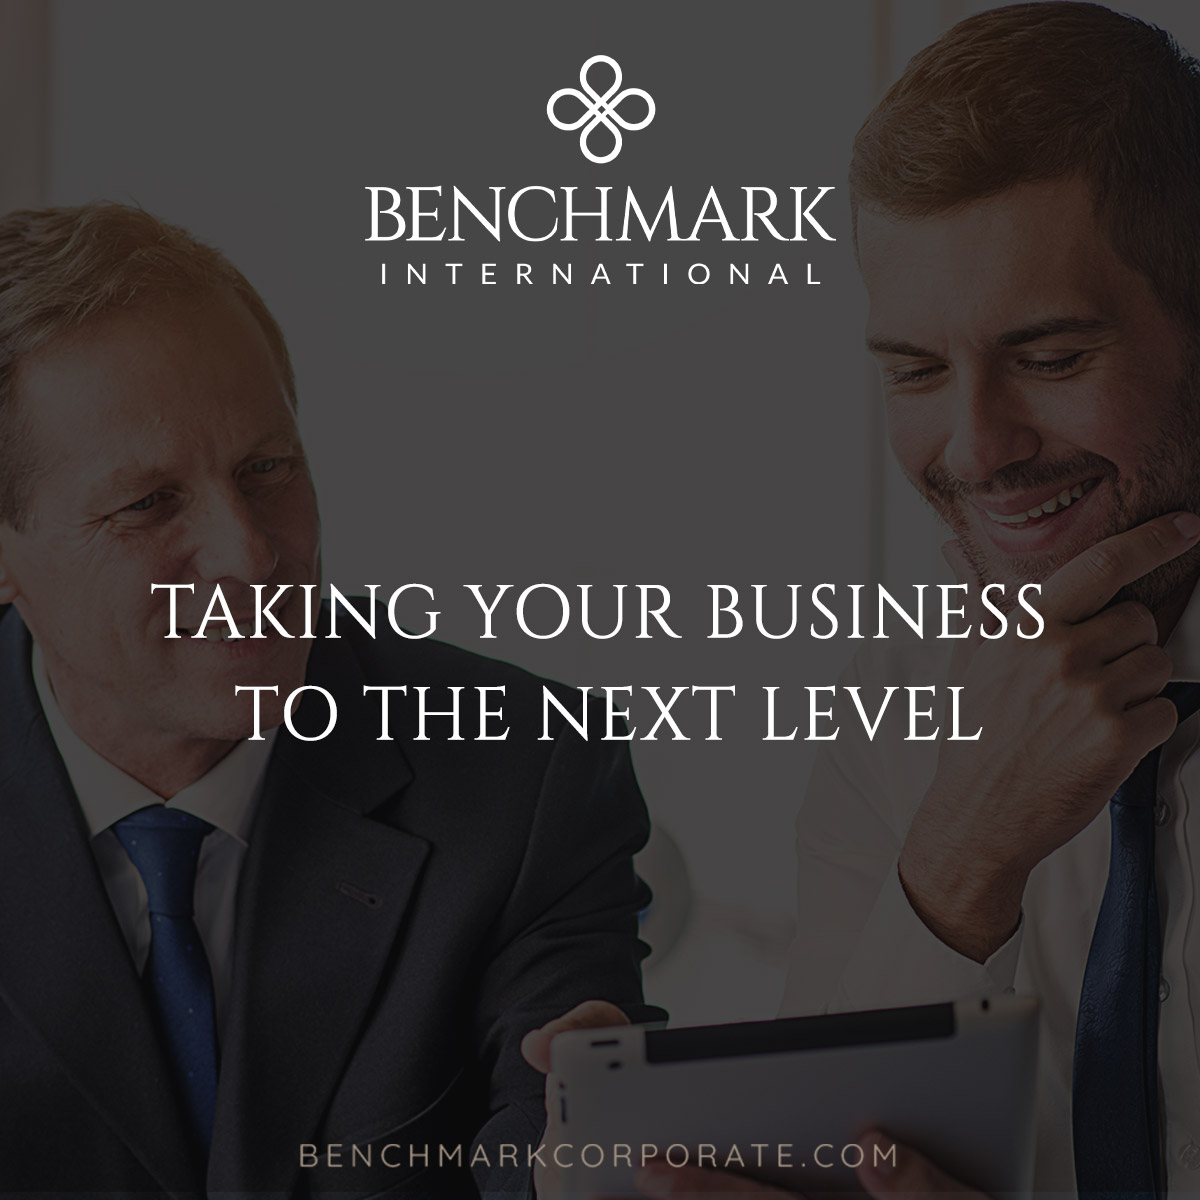 Taking_Business_Next_Level-Social